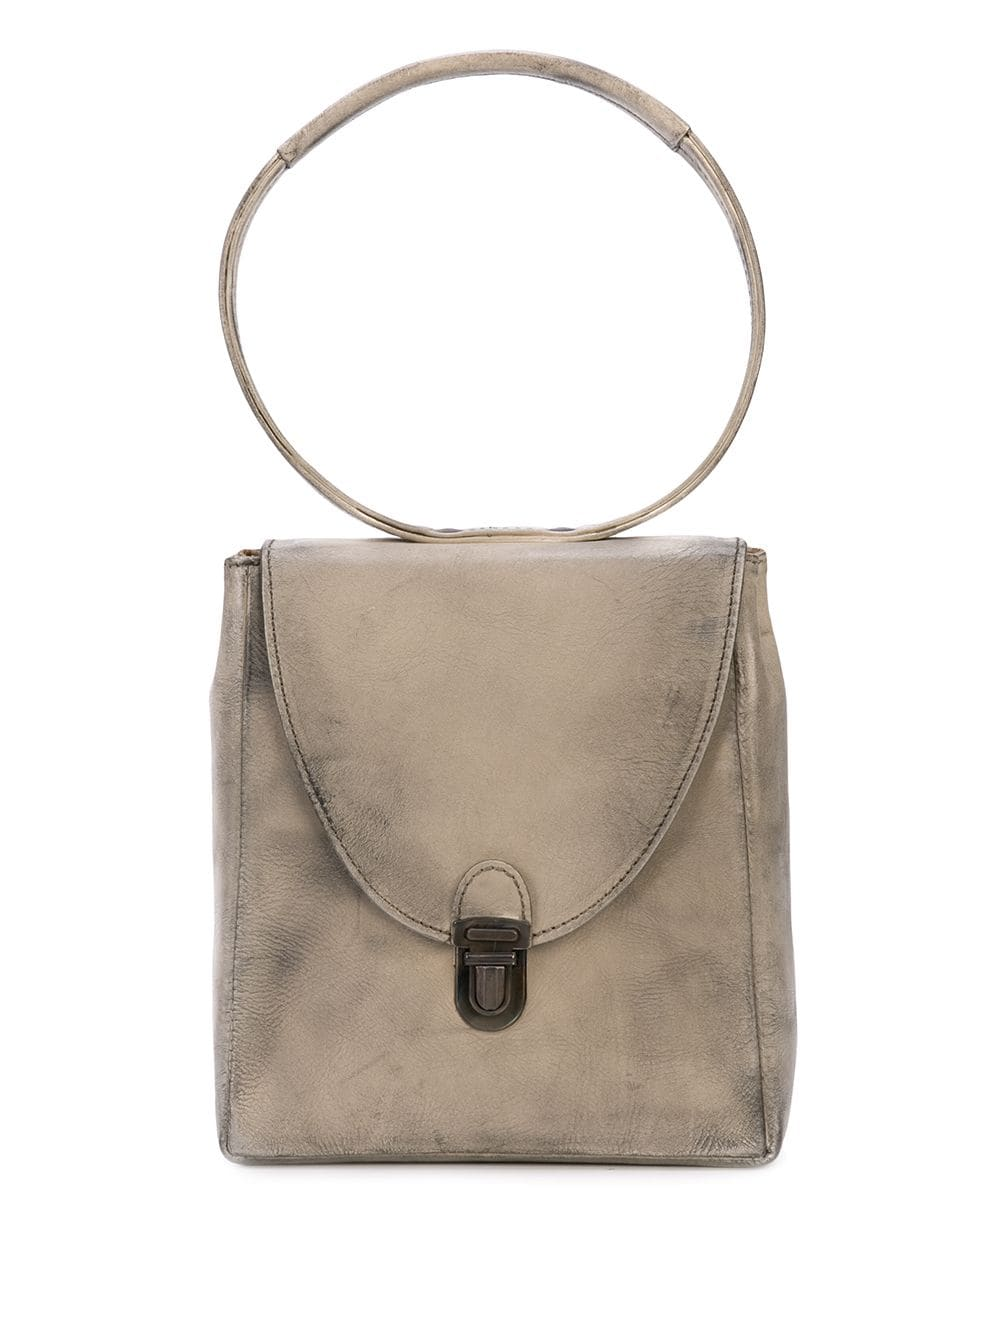 CHEREVICHKIOTVICHKI MINI RECTANGULAR LOCK BAG IN BLEACHED CALF